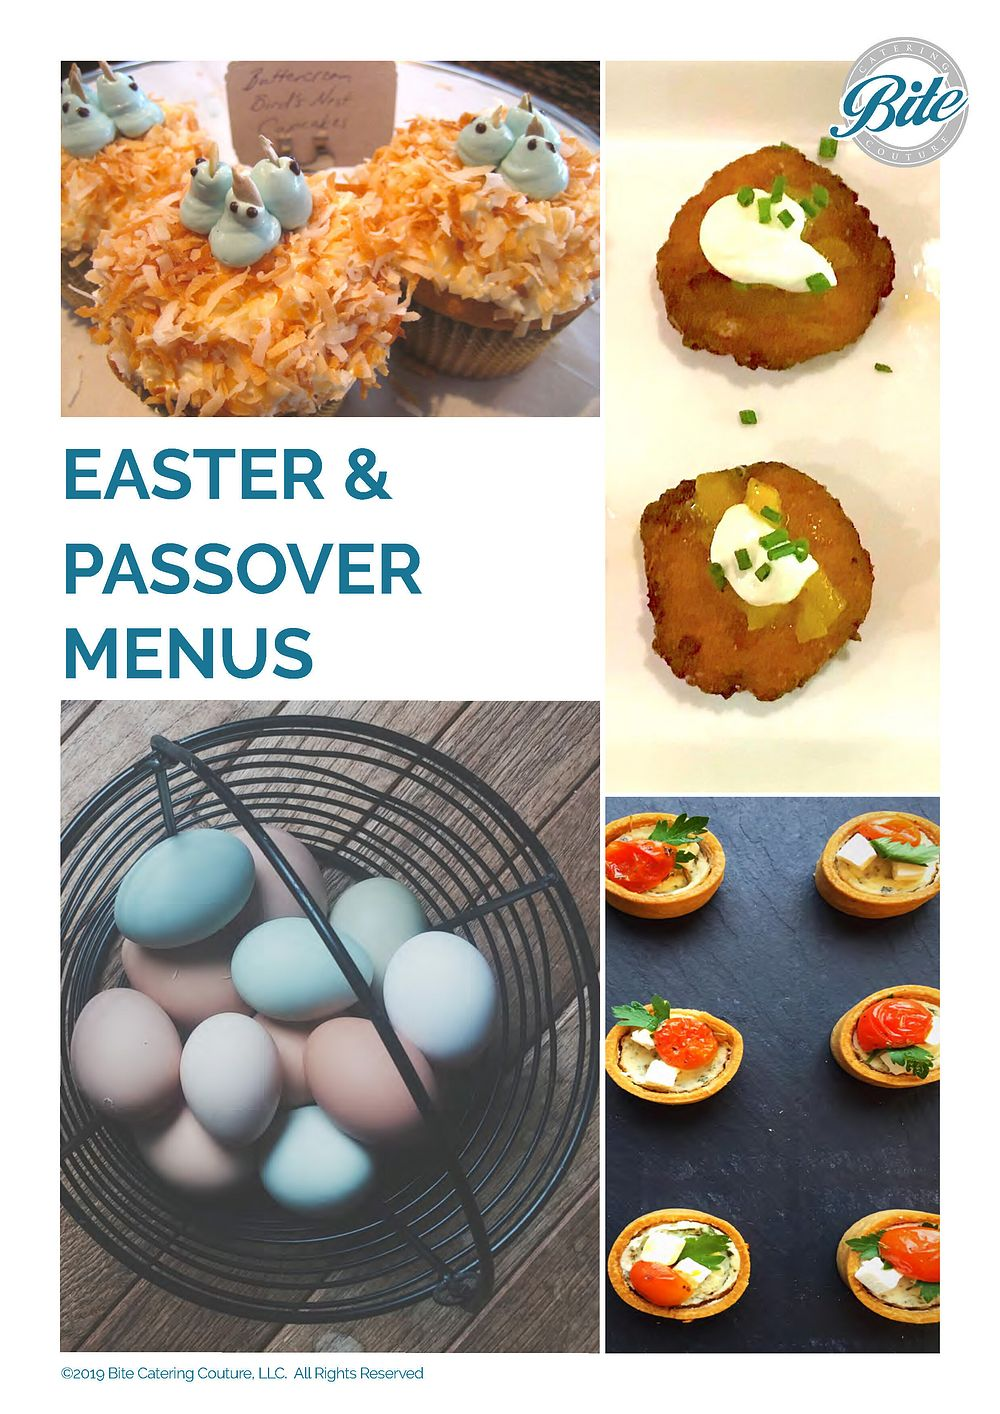 Easter & Passover Catering Menus